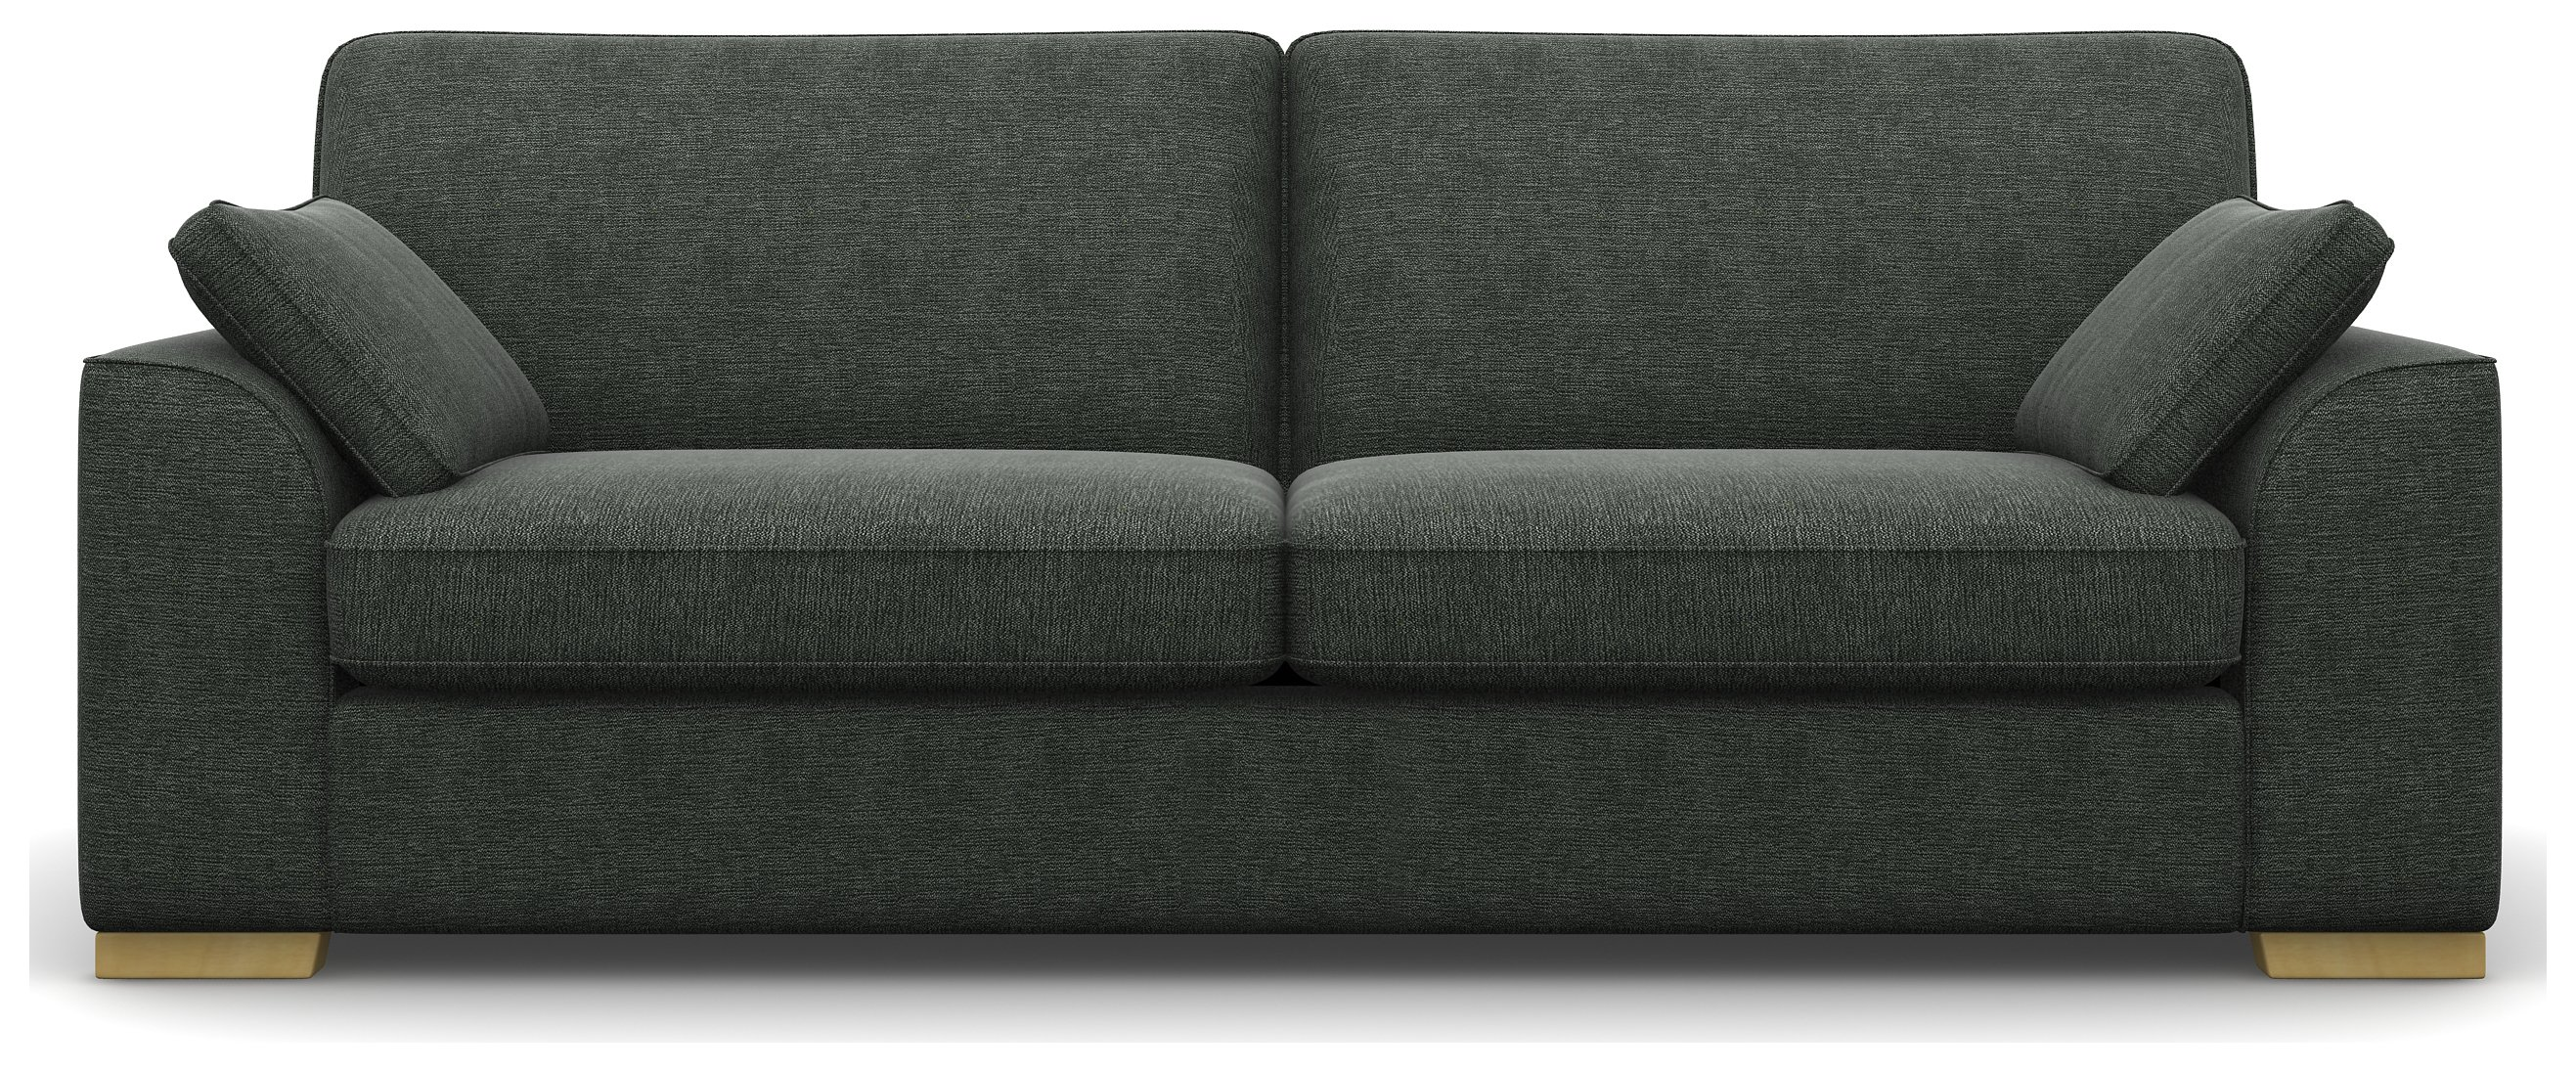 Heart of House Lincoln 4 Seater Fabric Sofa - Light Grey